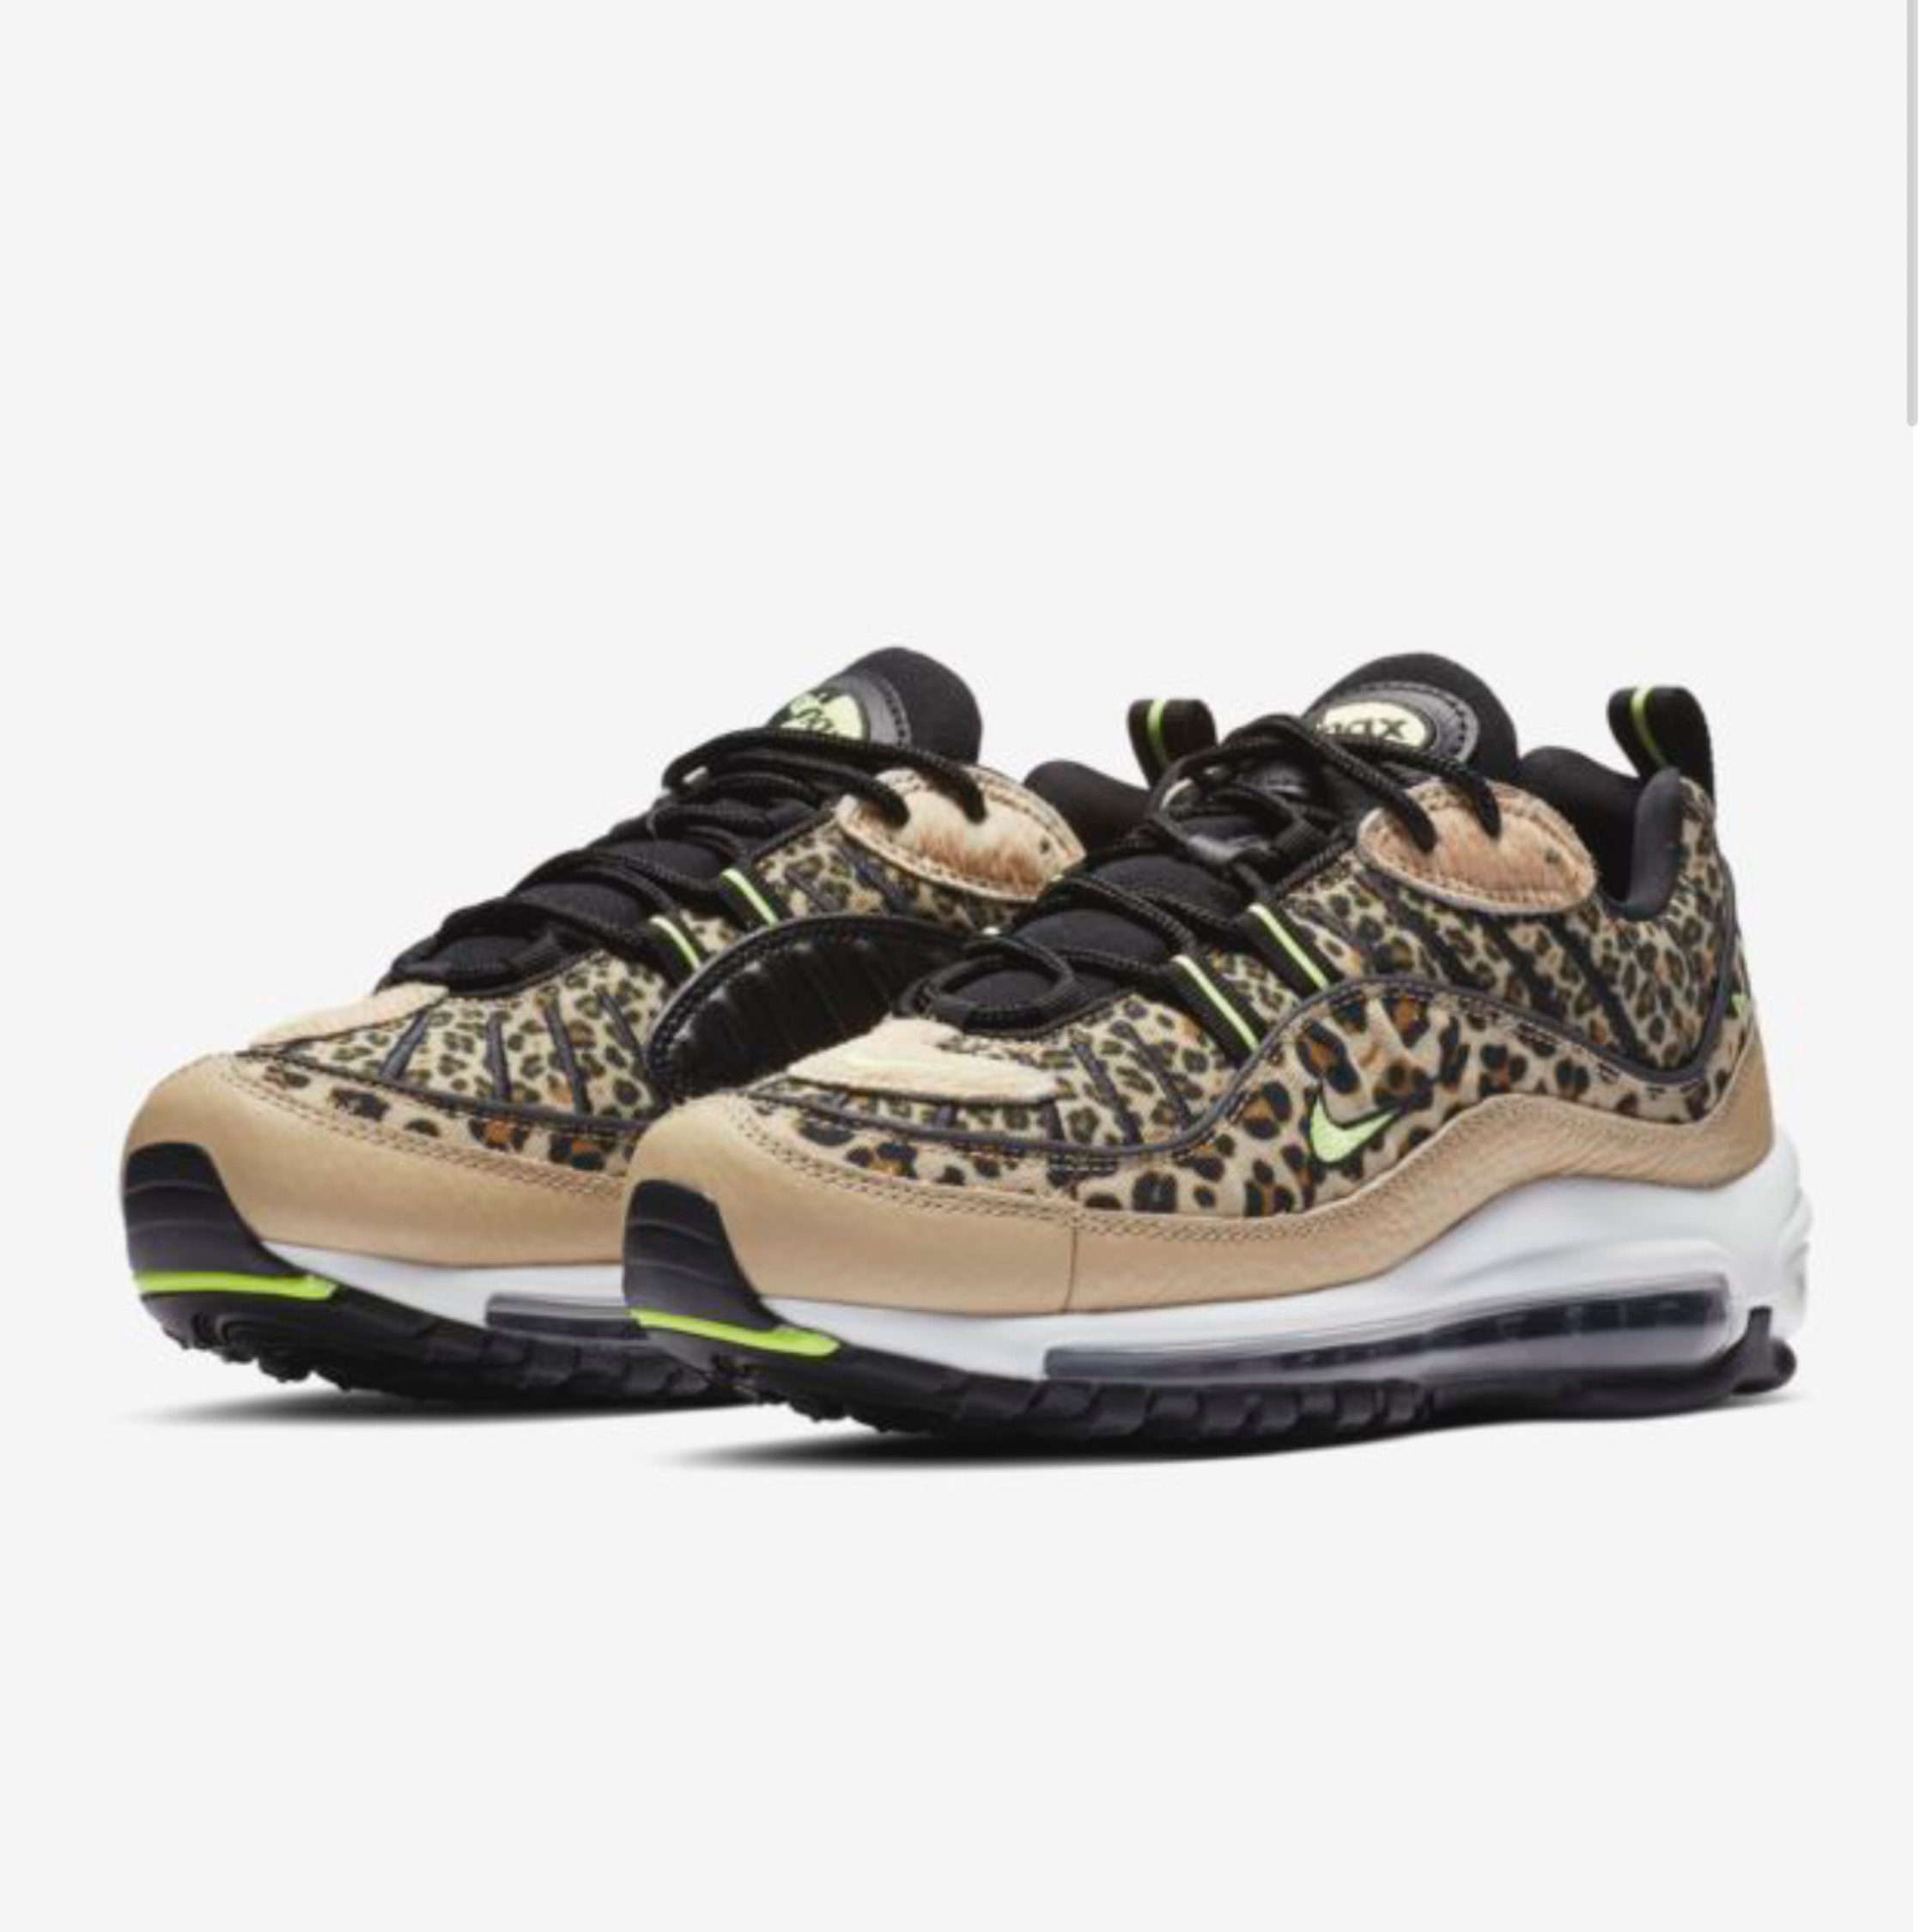 ee176b530d Nike Air Max 98 Premium W 'Animal Pack' Uk 6.5